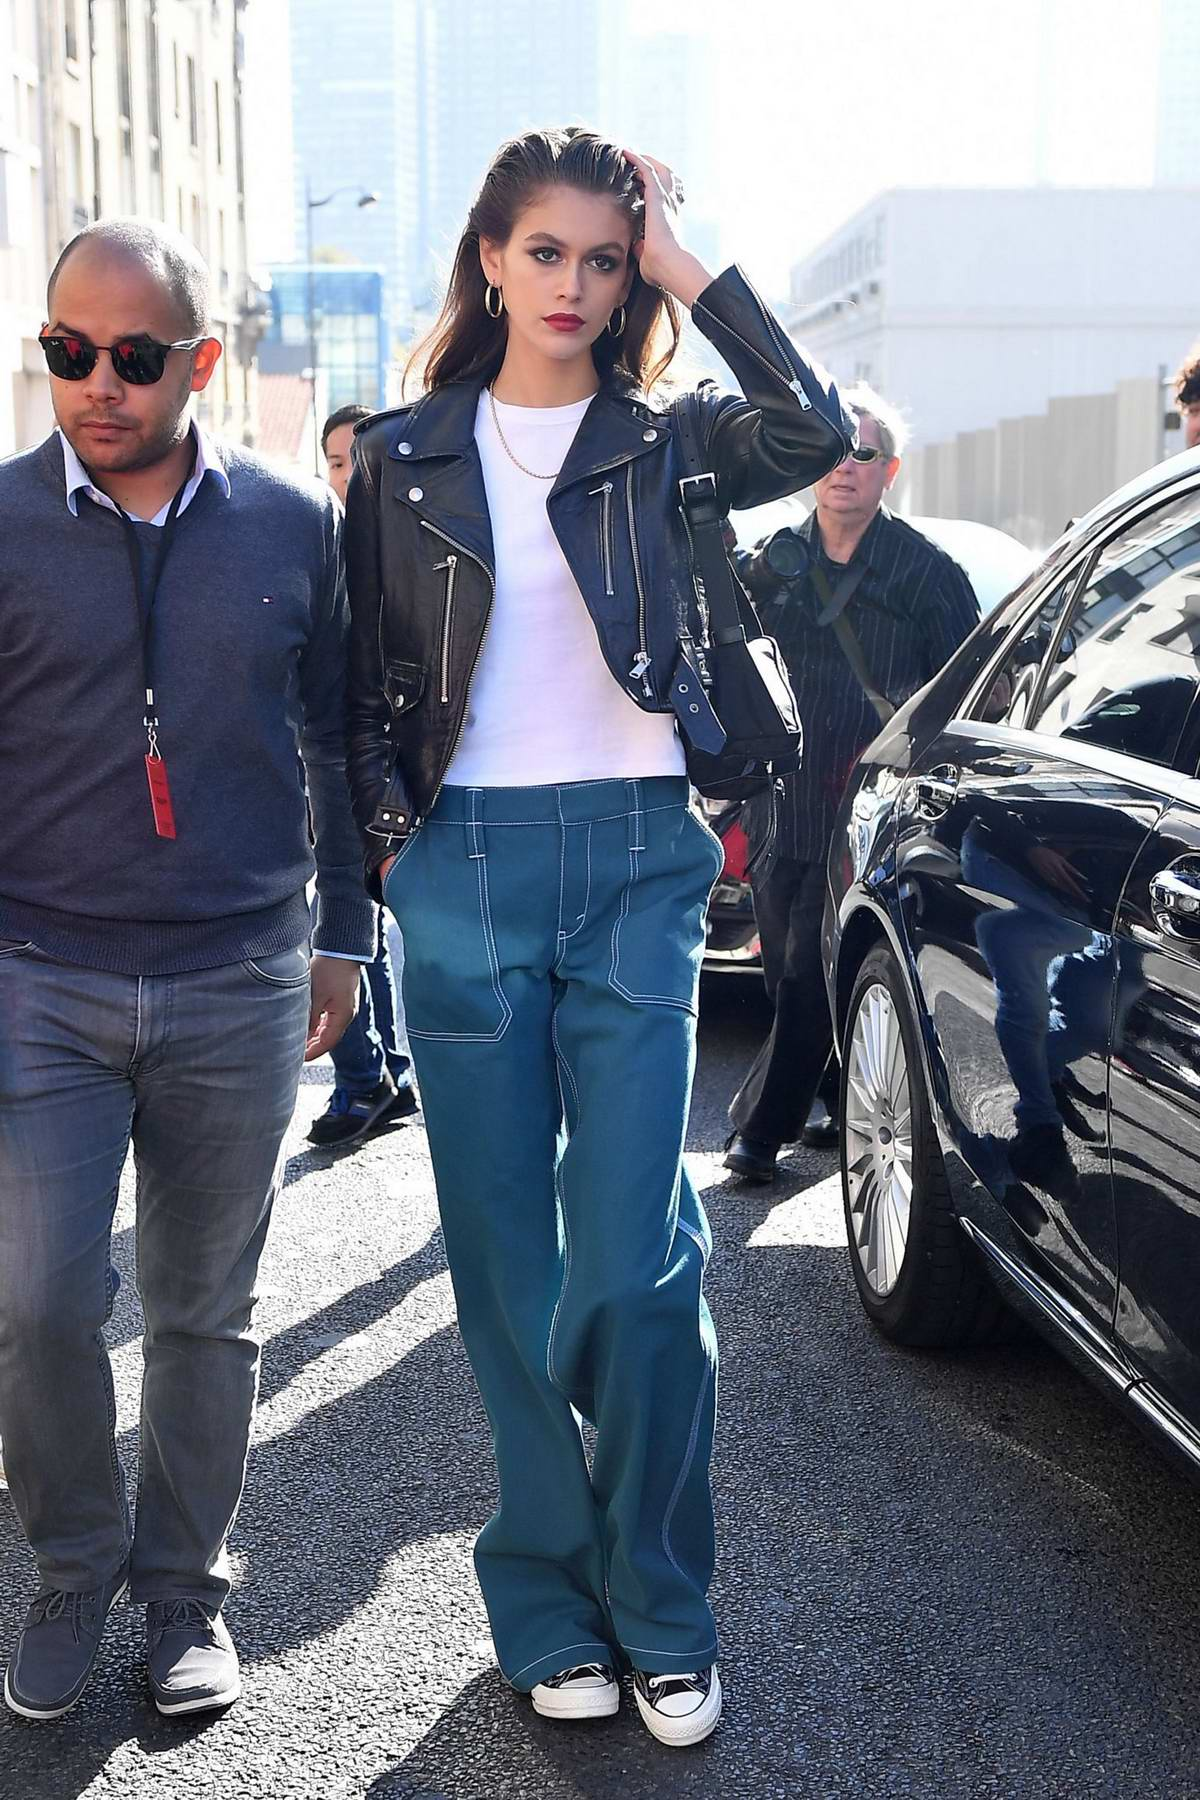 Kaia Gerber steps out in a black leather jacket with wide turquoise pants while out during Paris Fashion Week in Paris, France